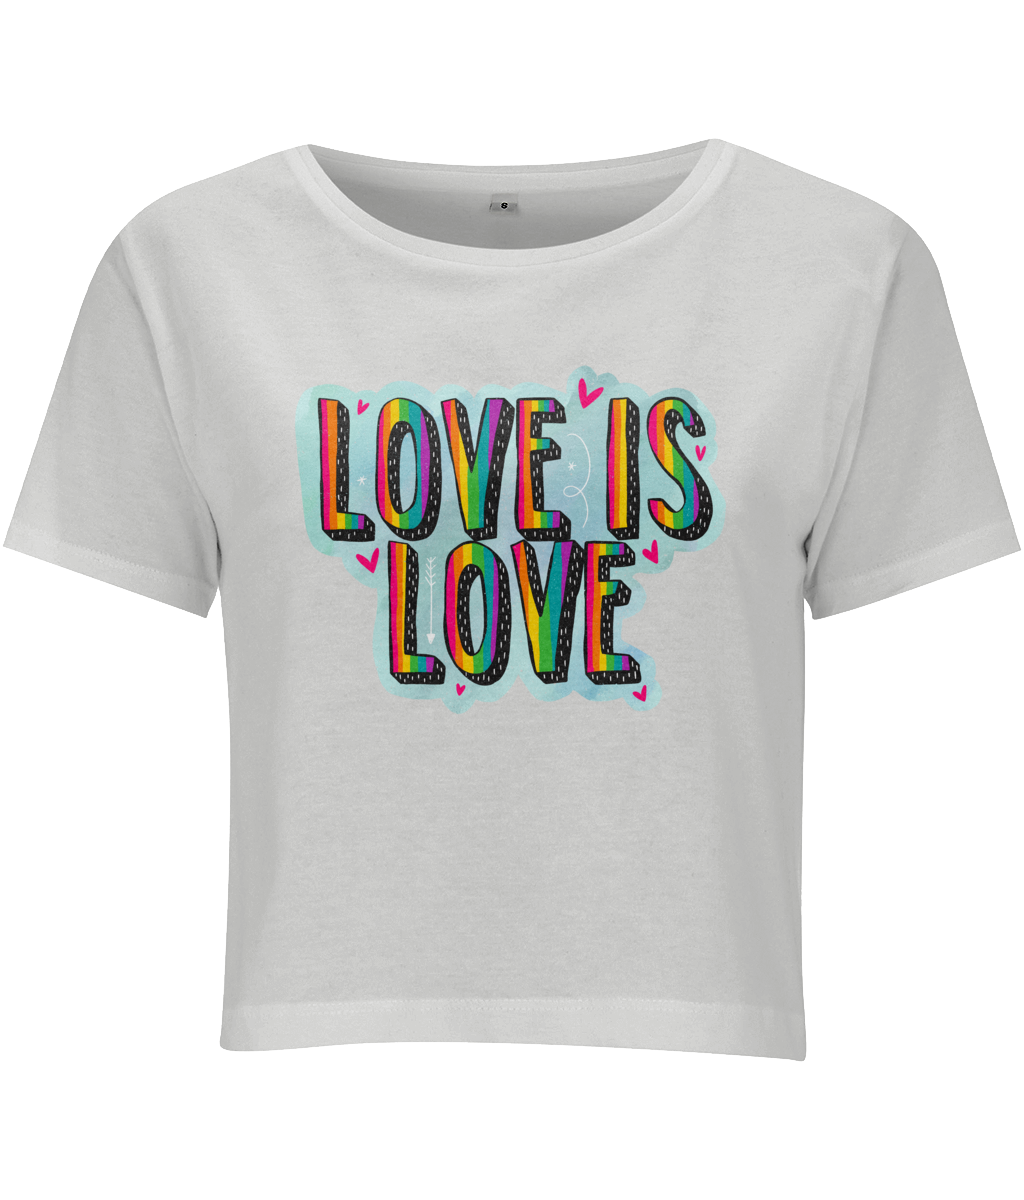 Love Is Love Crop Top - House Of Wonderland, HOW